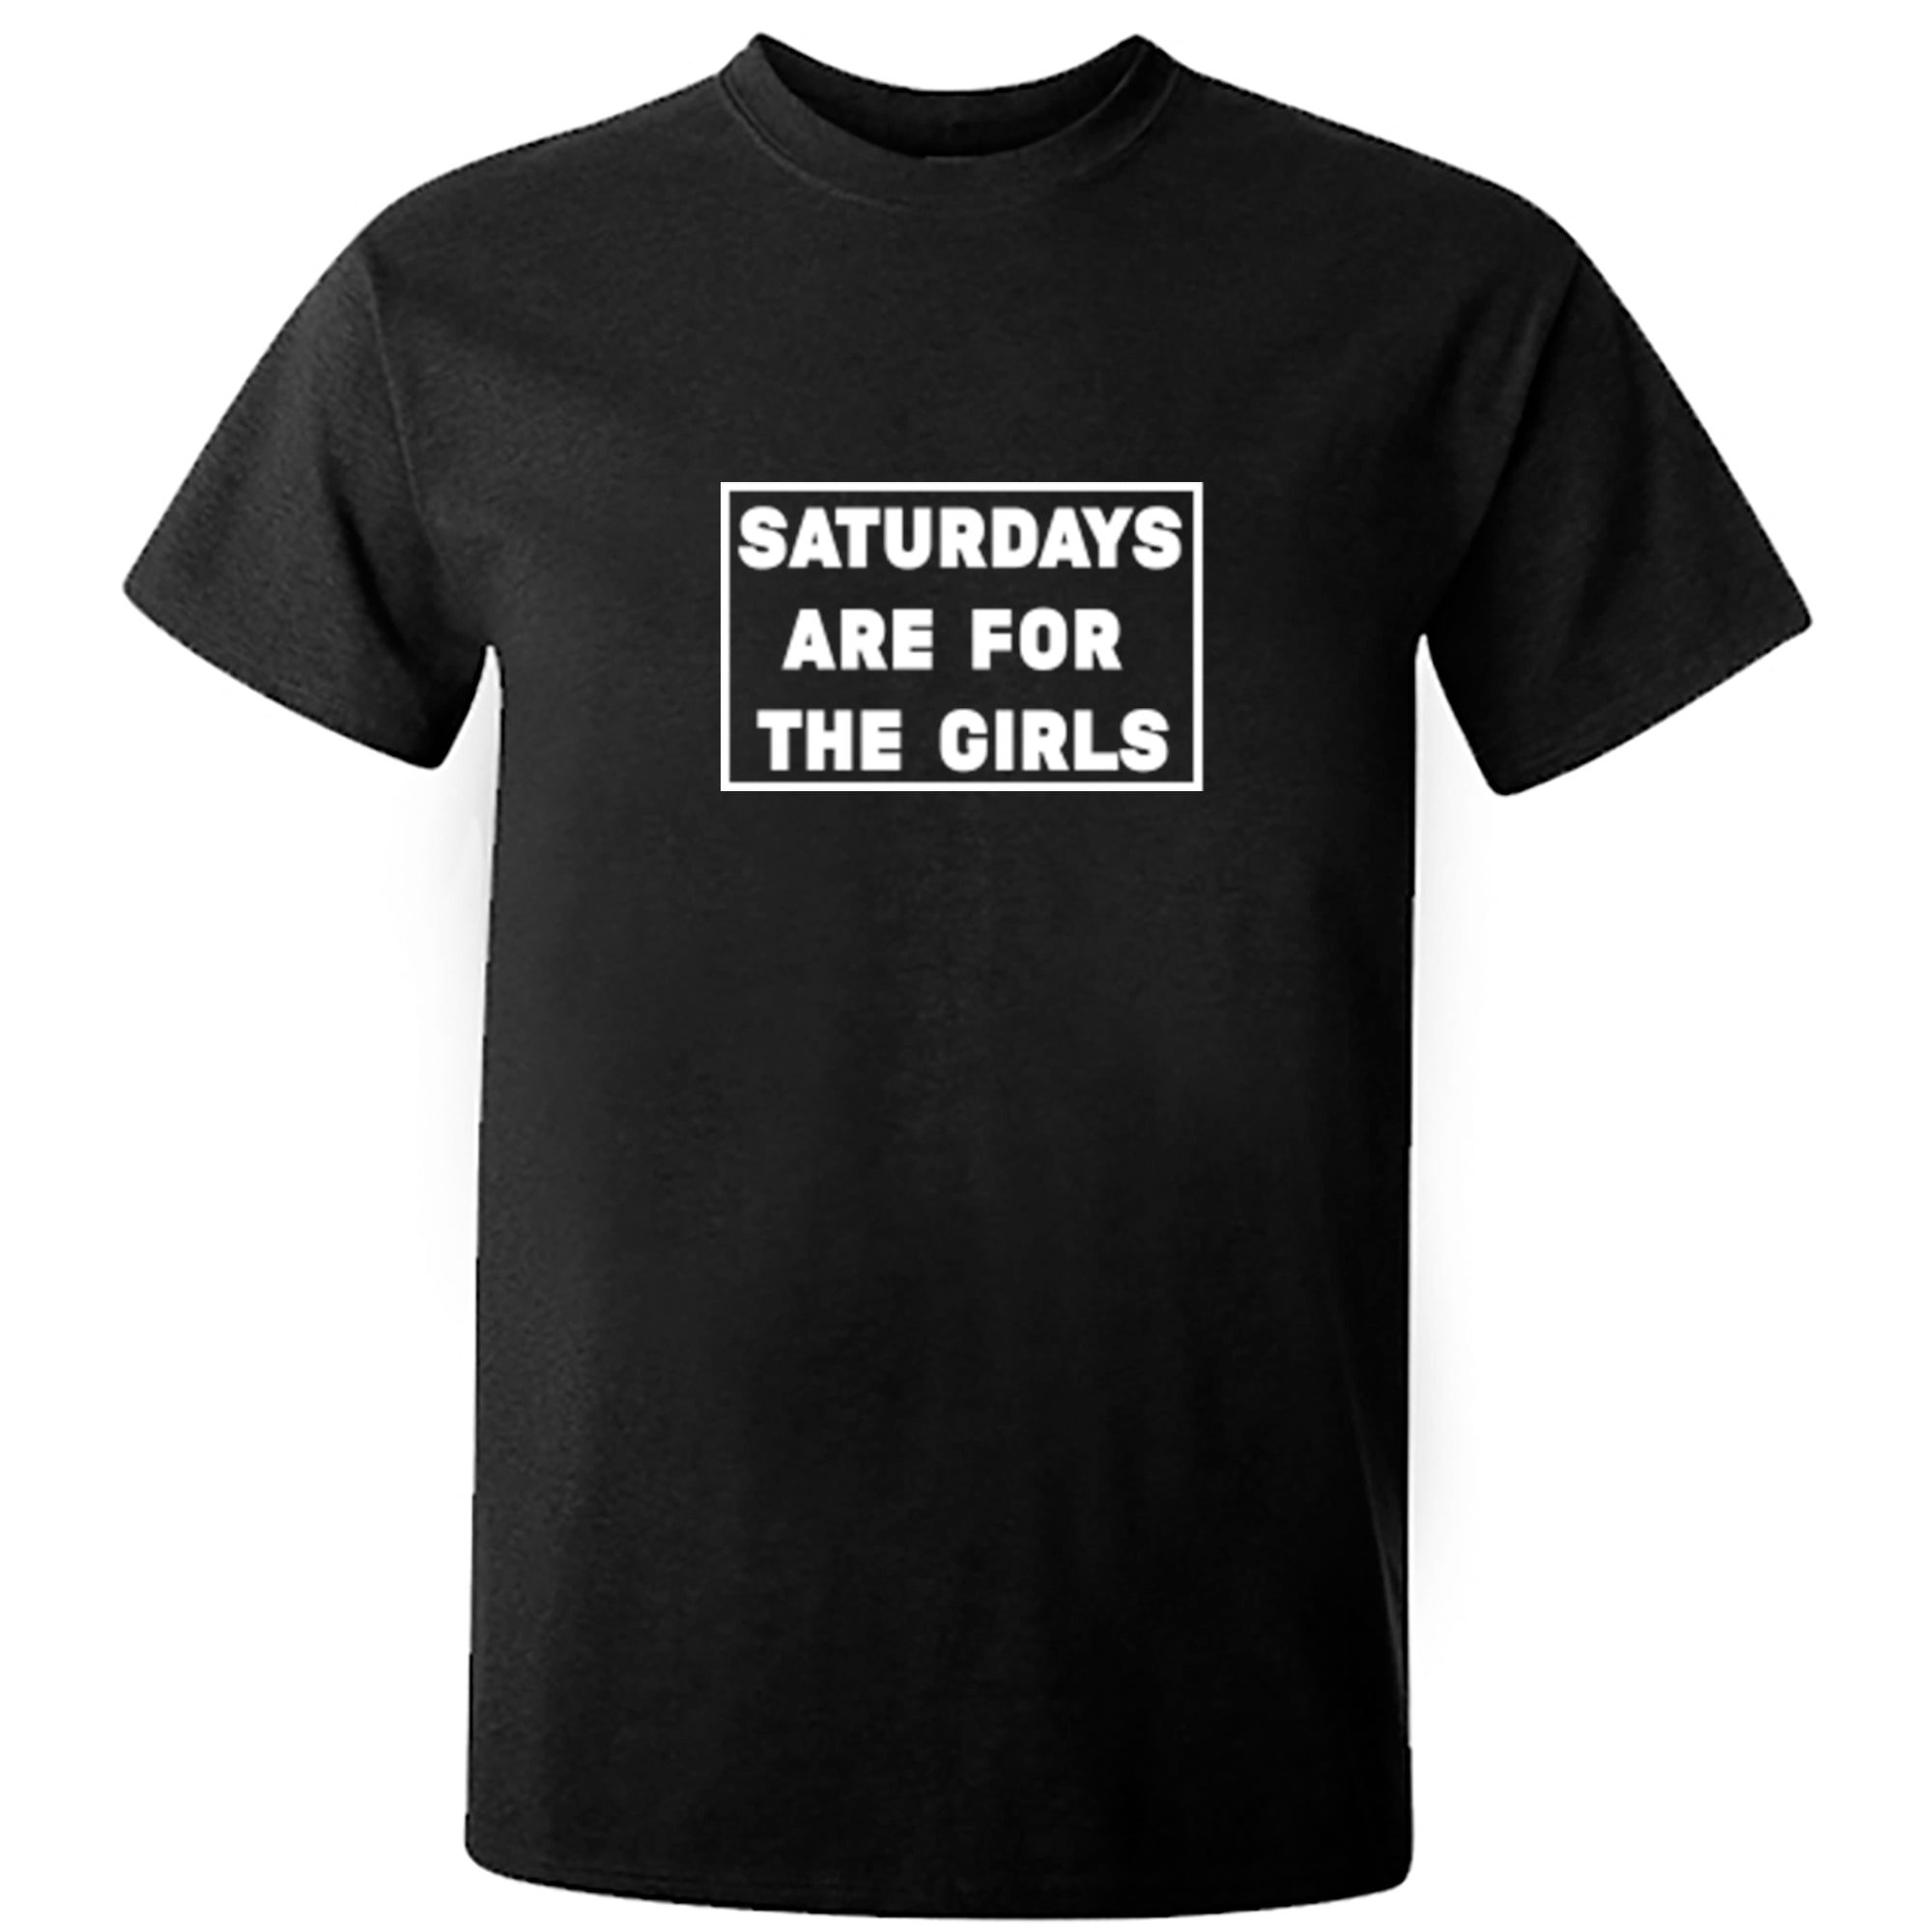 Saturdays Are For The Girls Unisex Fit T-Shirt S1171 - Illustrated Identity Ltd.